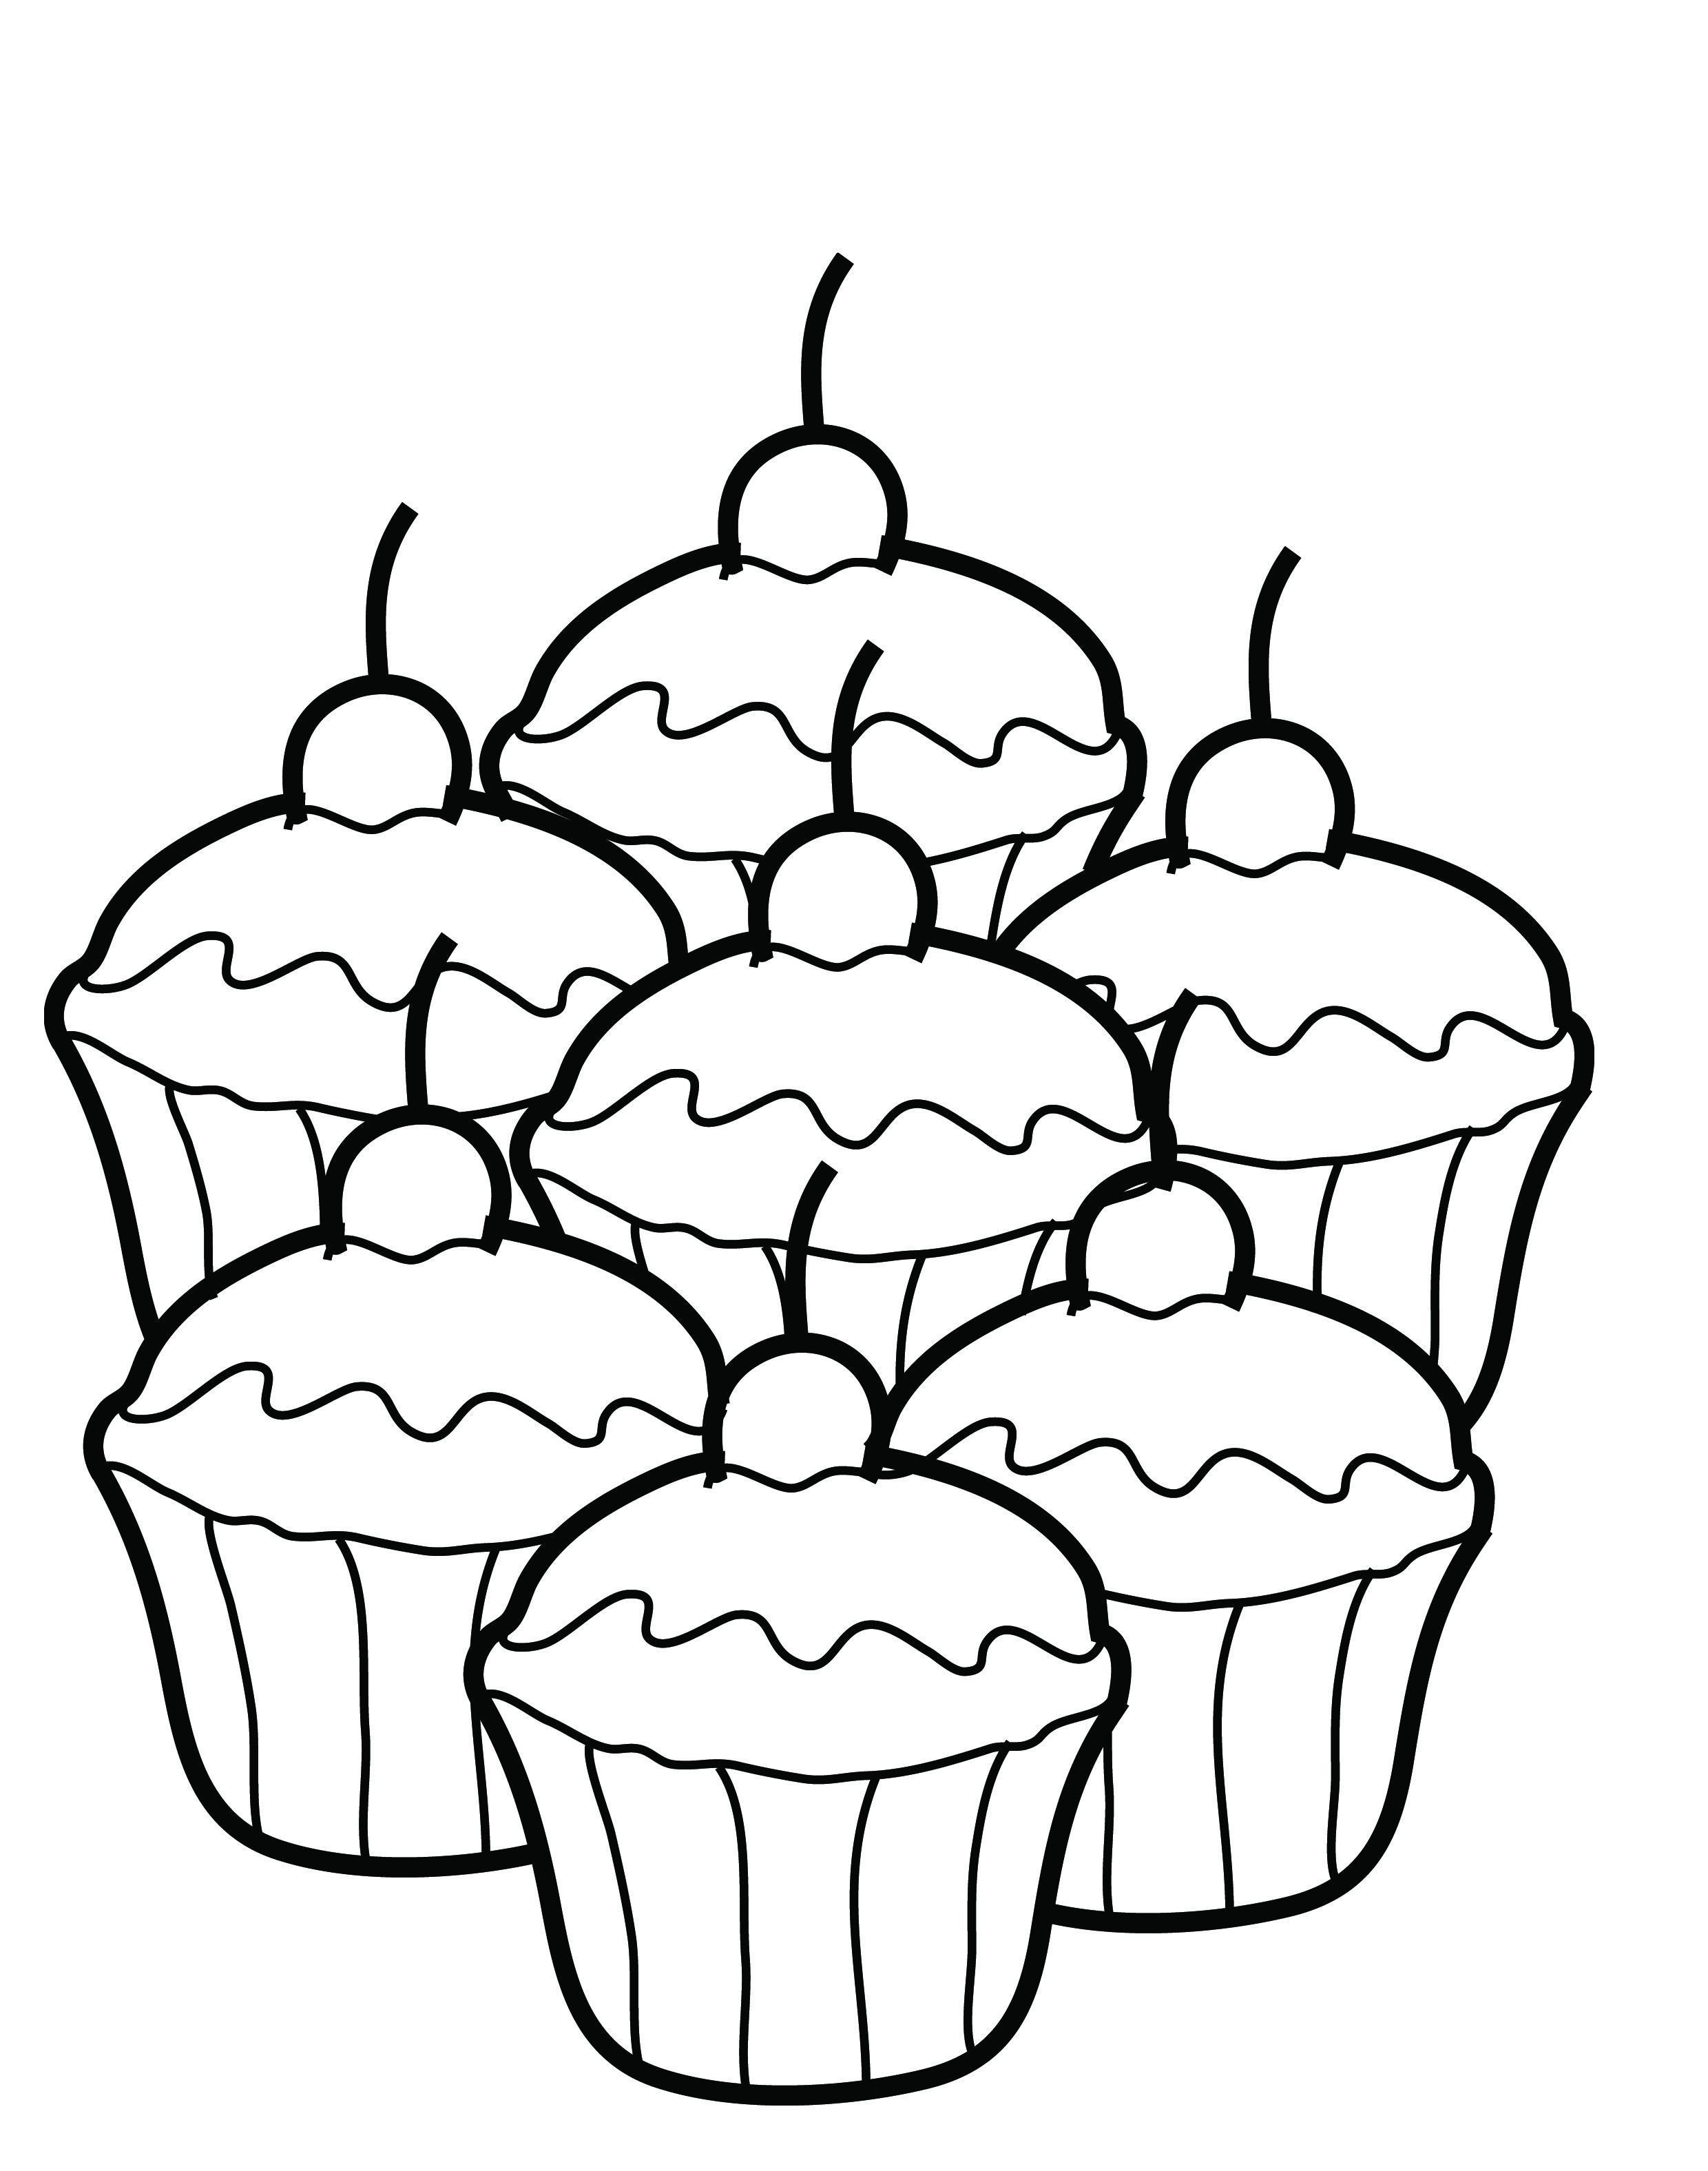 free printable cupcake coloring pages for kids - Print Colouring Pages